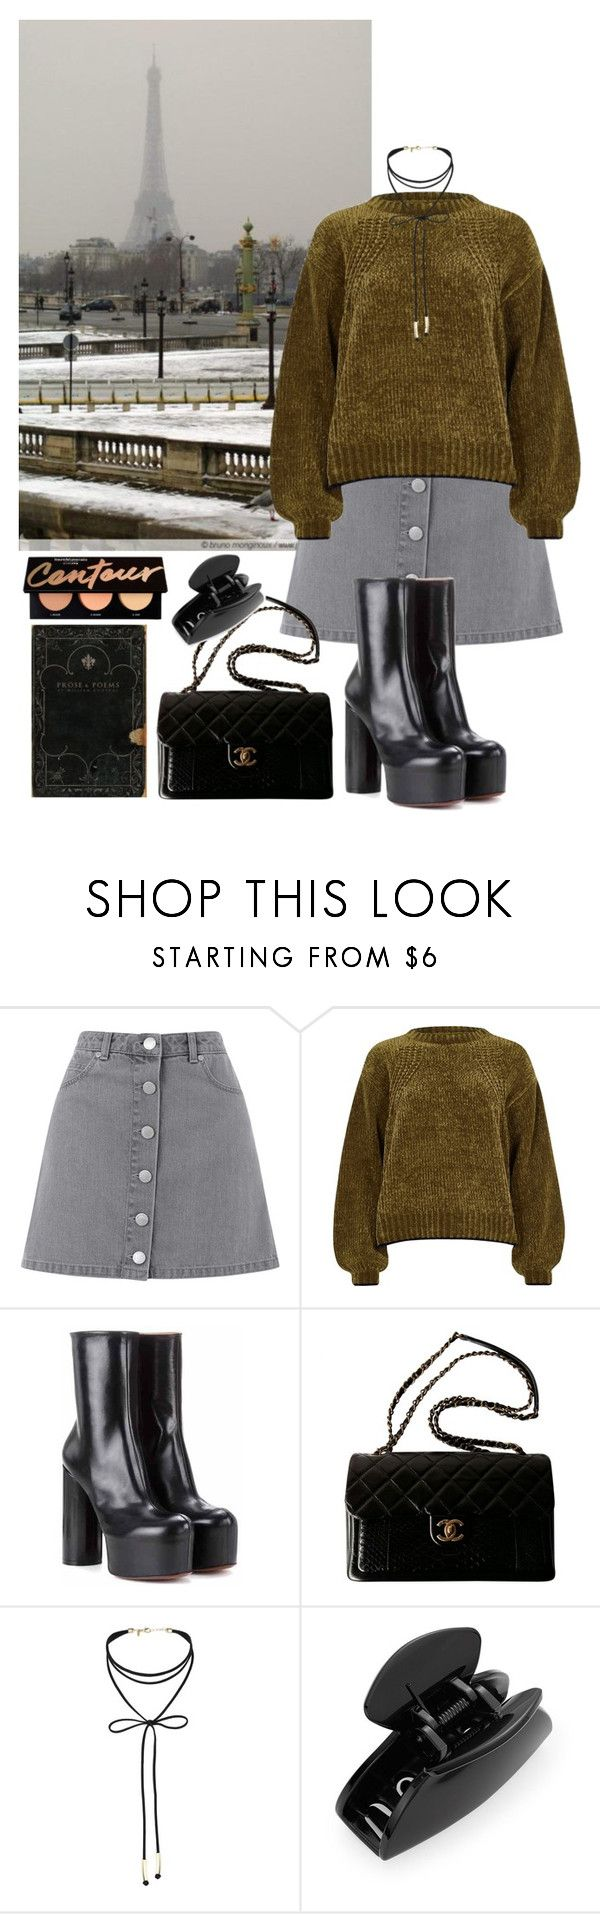 Untitled #439 by danielagreg on Polyvore featuring River Island, Miss Selfridge, Vetements, Chanel and Cara